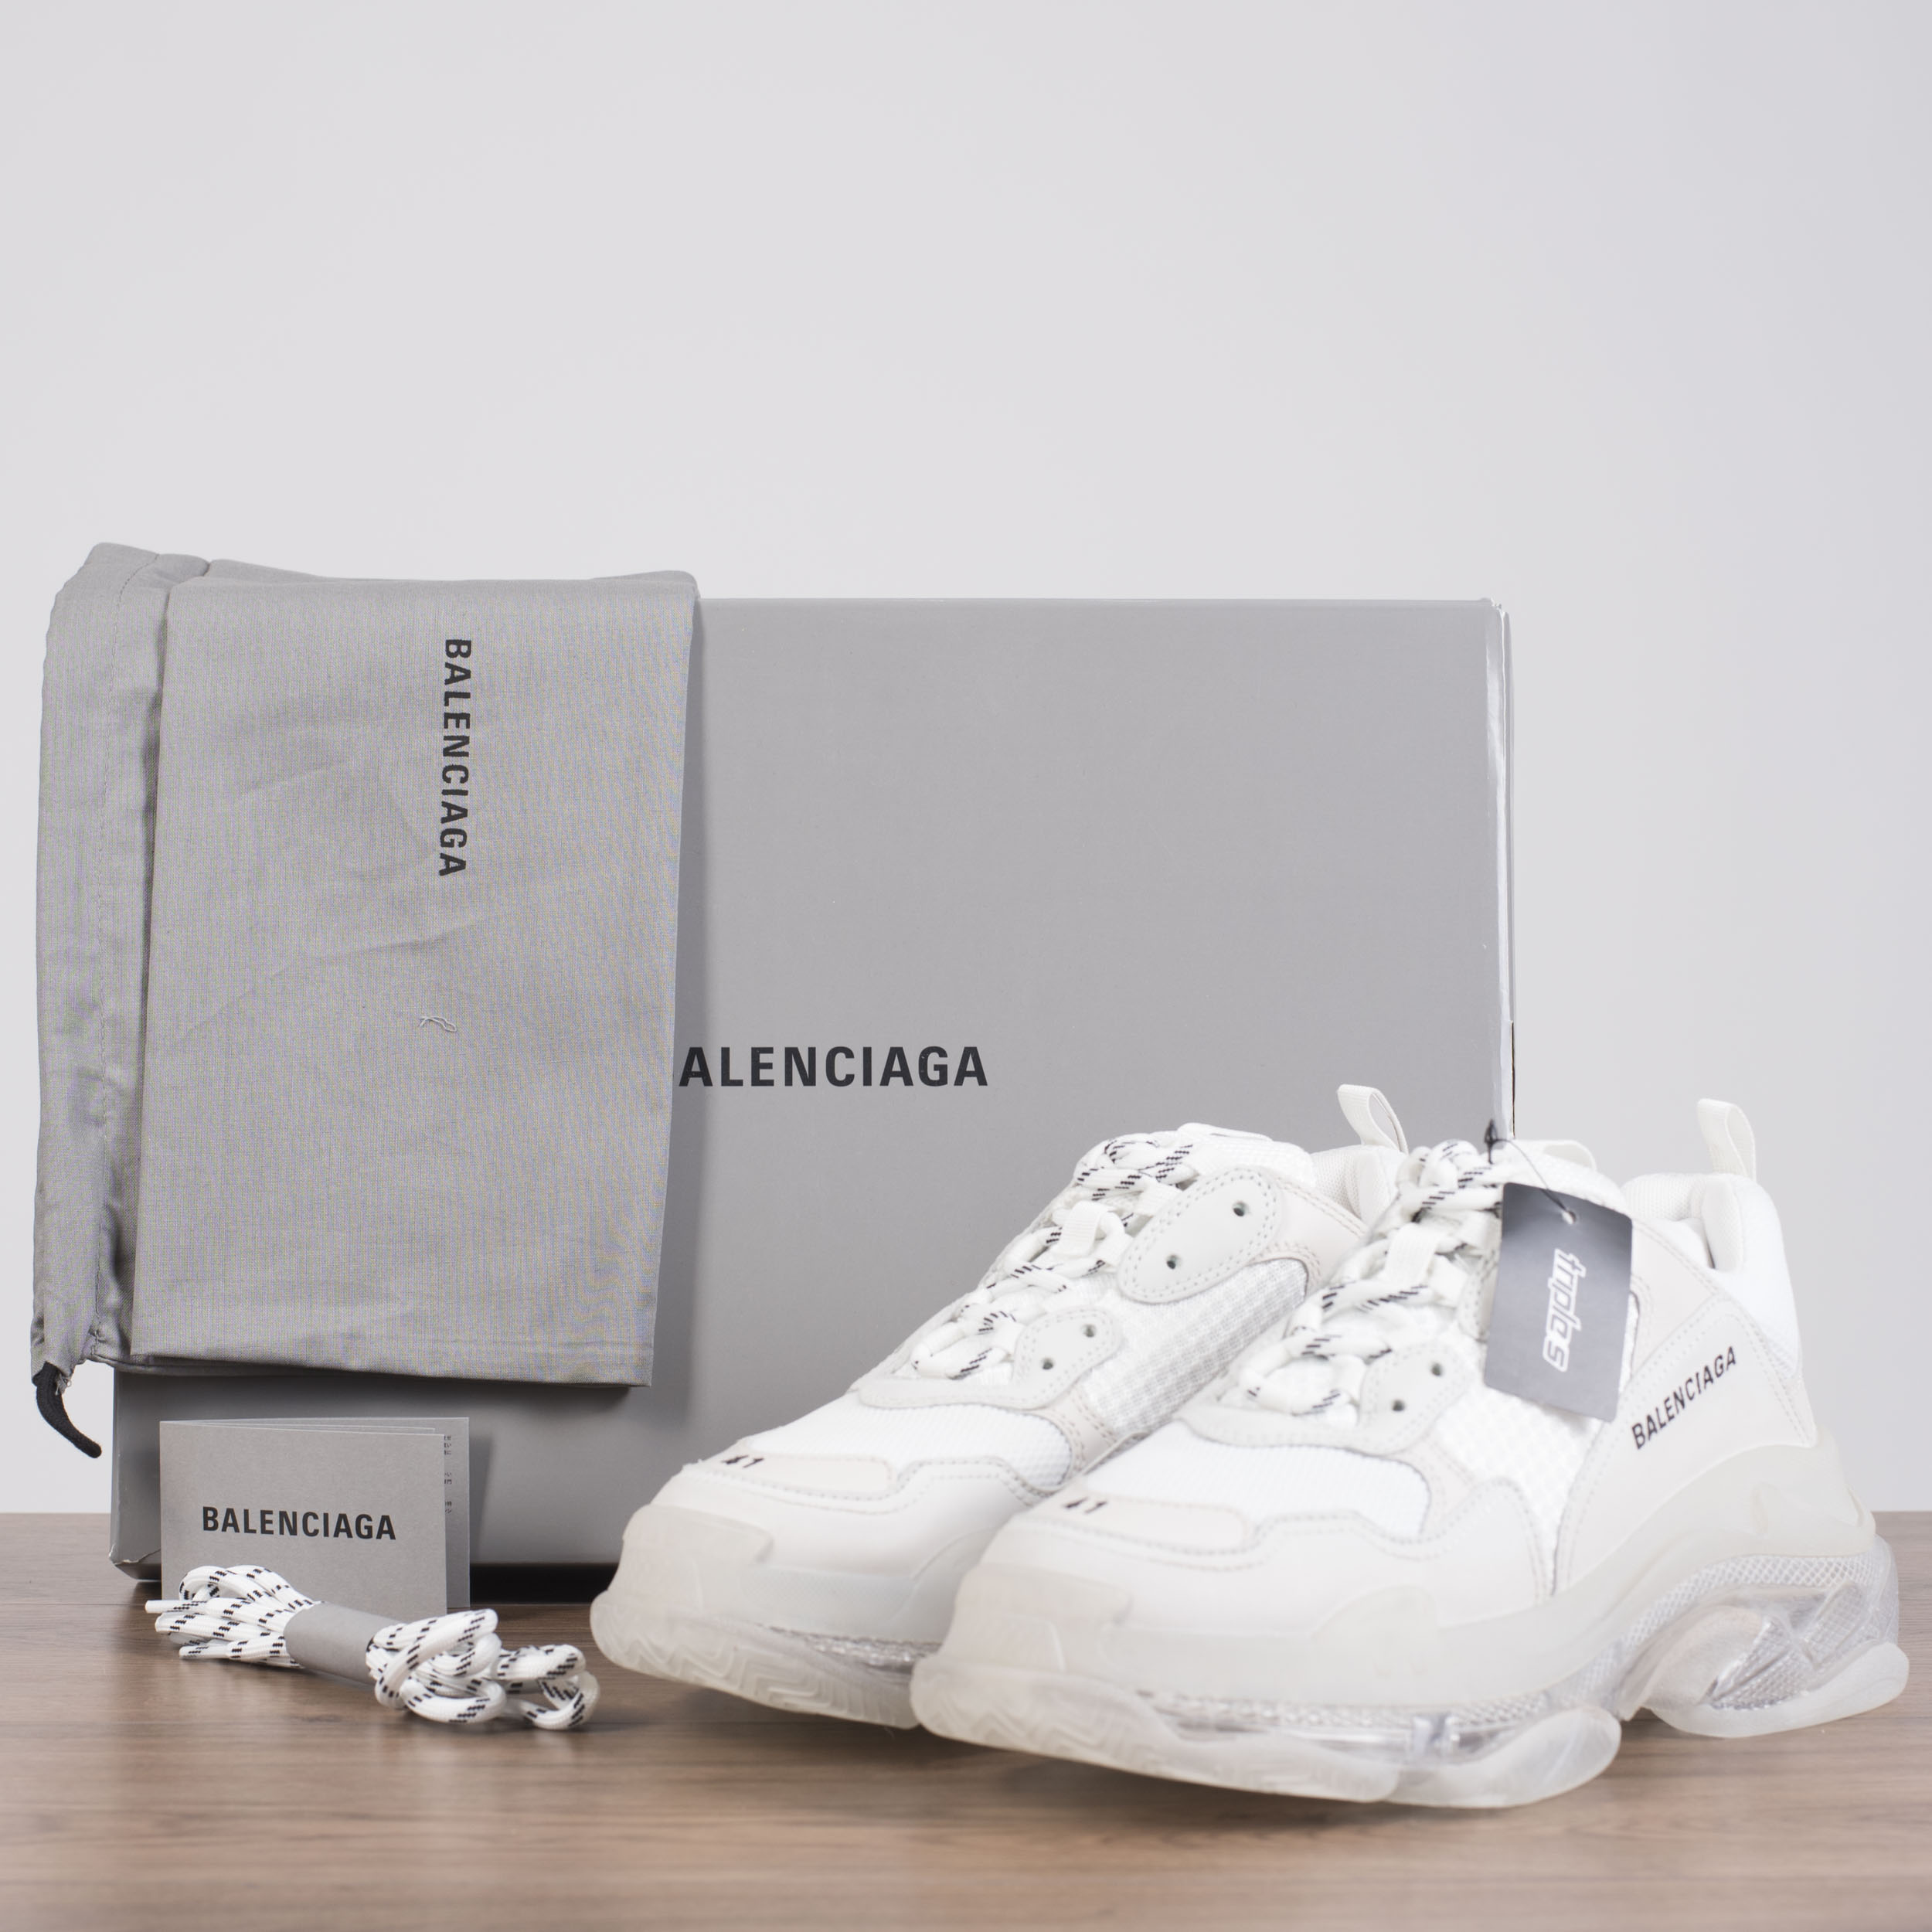 0692249e6ab Details about BALENCIAGA 995  Authentic White Triple S Sneakers With Clear  Air Bubble Soles